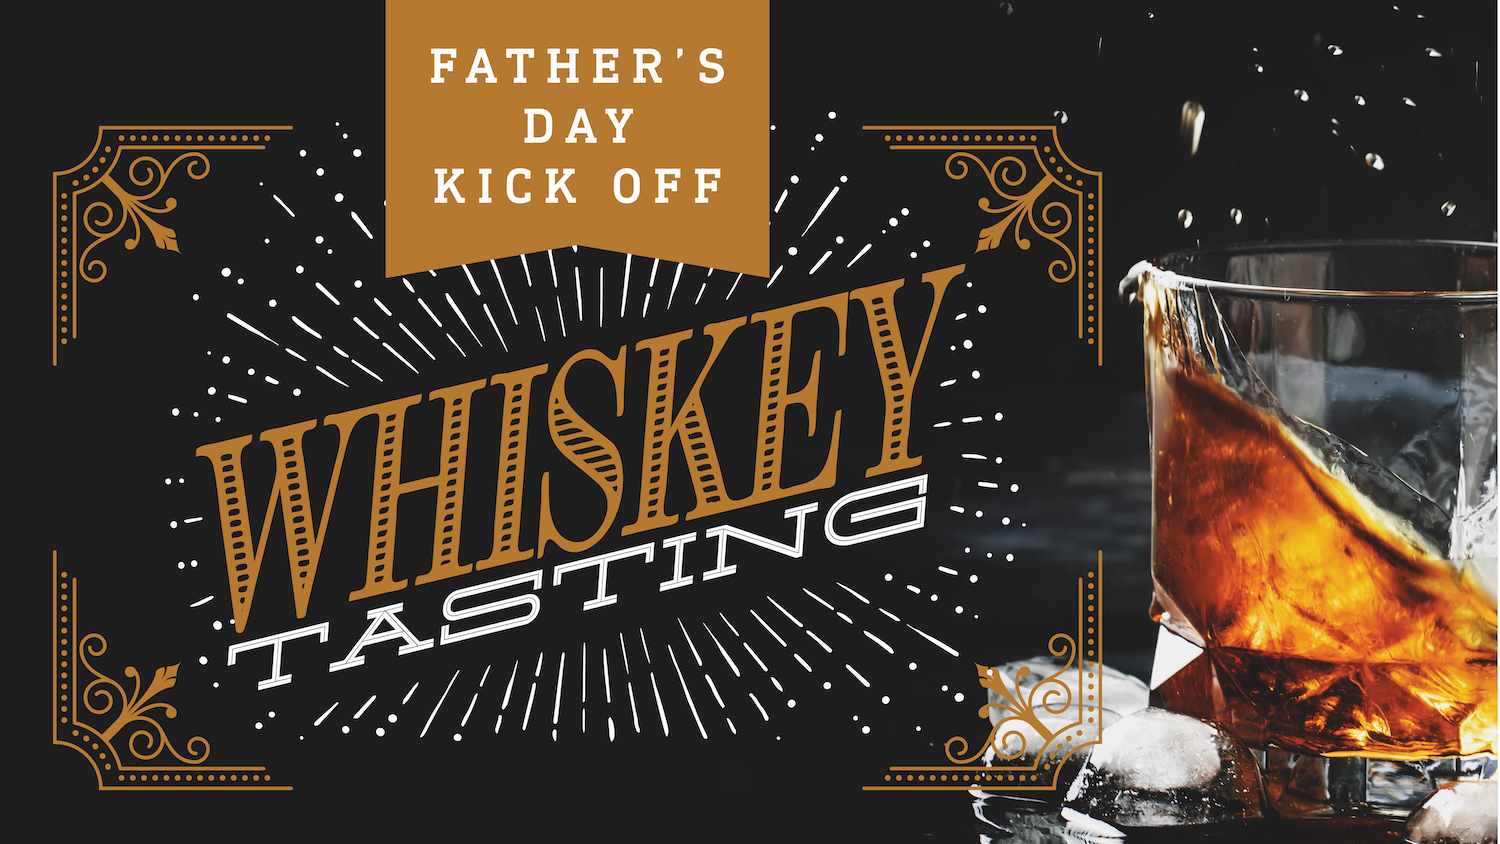 Fathers day whiskey tasting